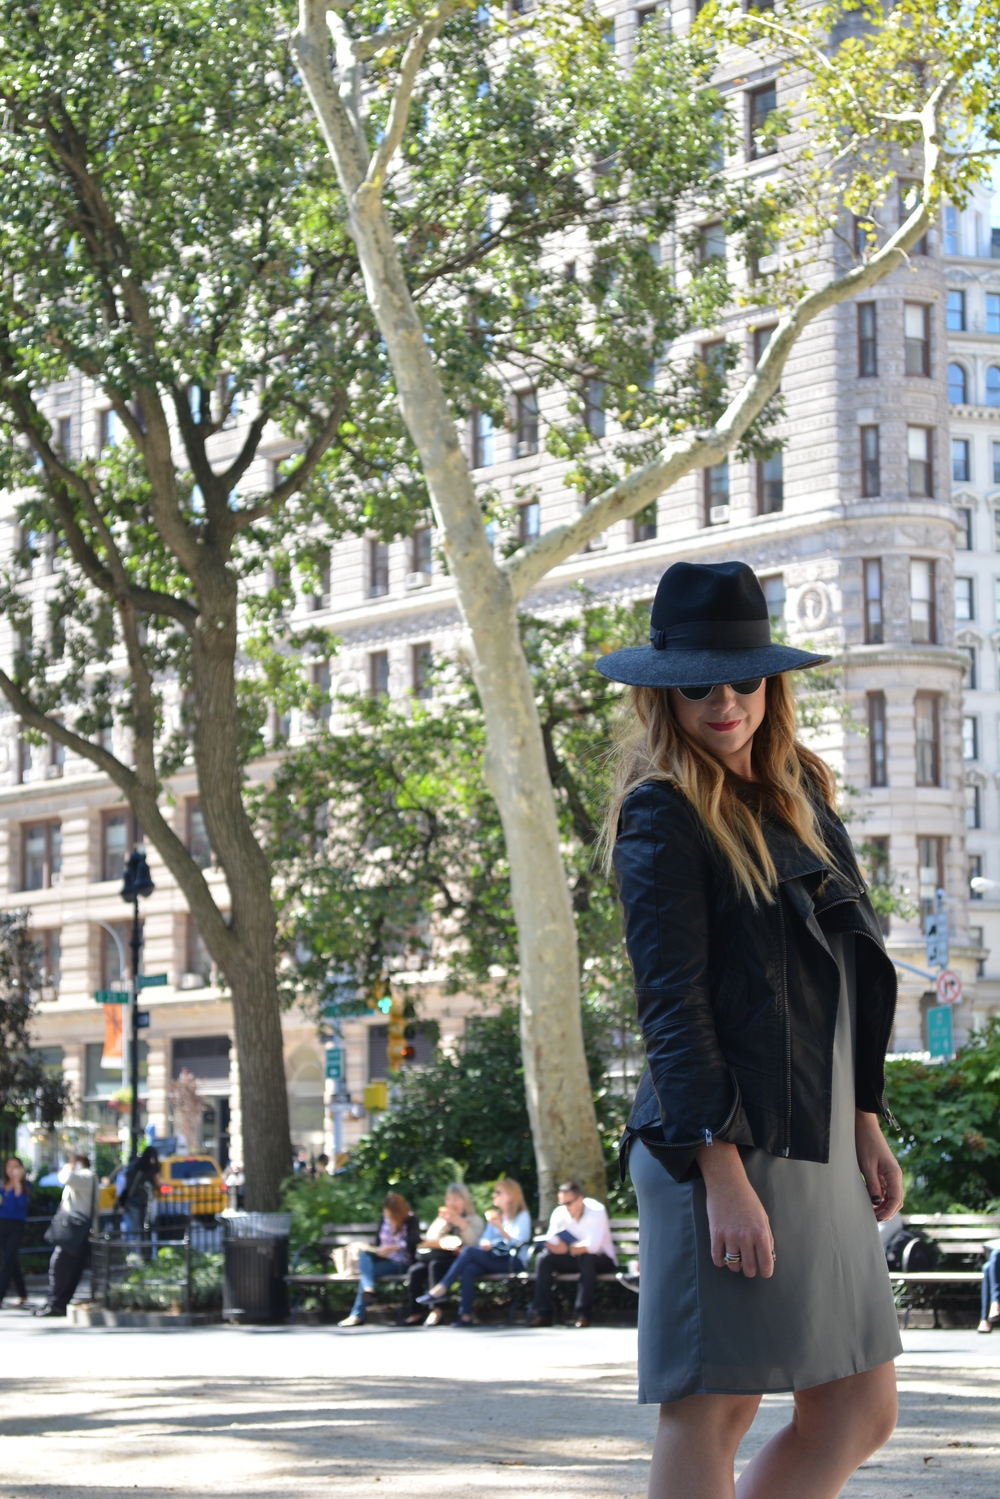 Wide brim hat, moto jacket, shift dress outfit